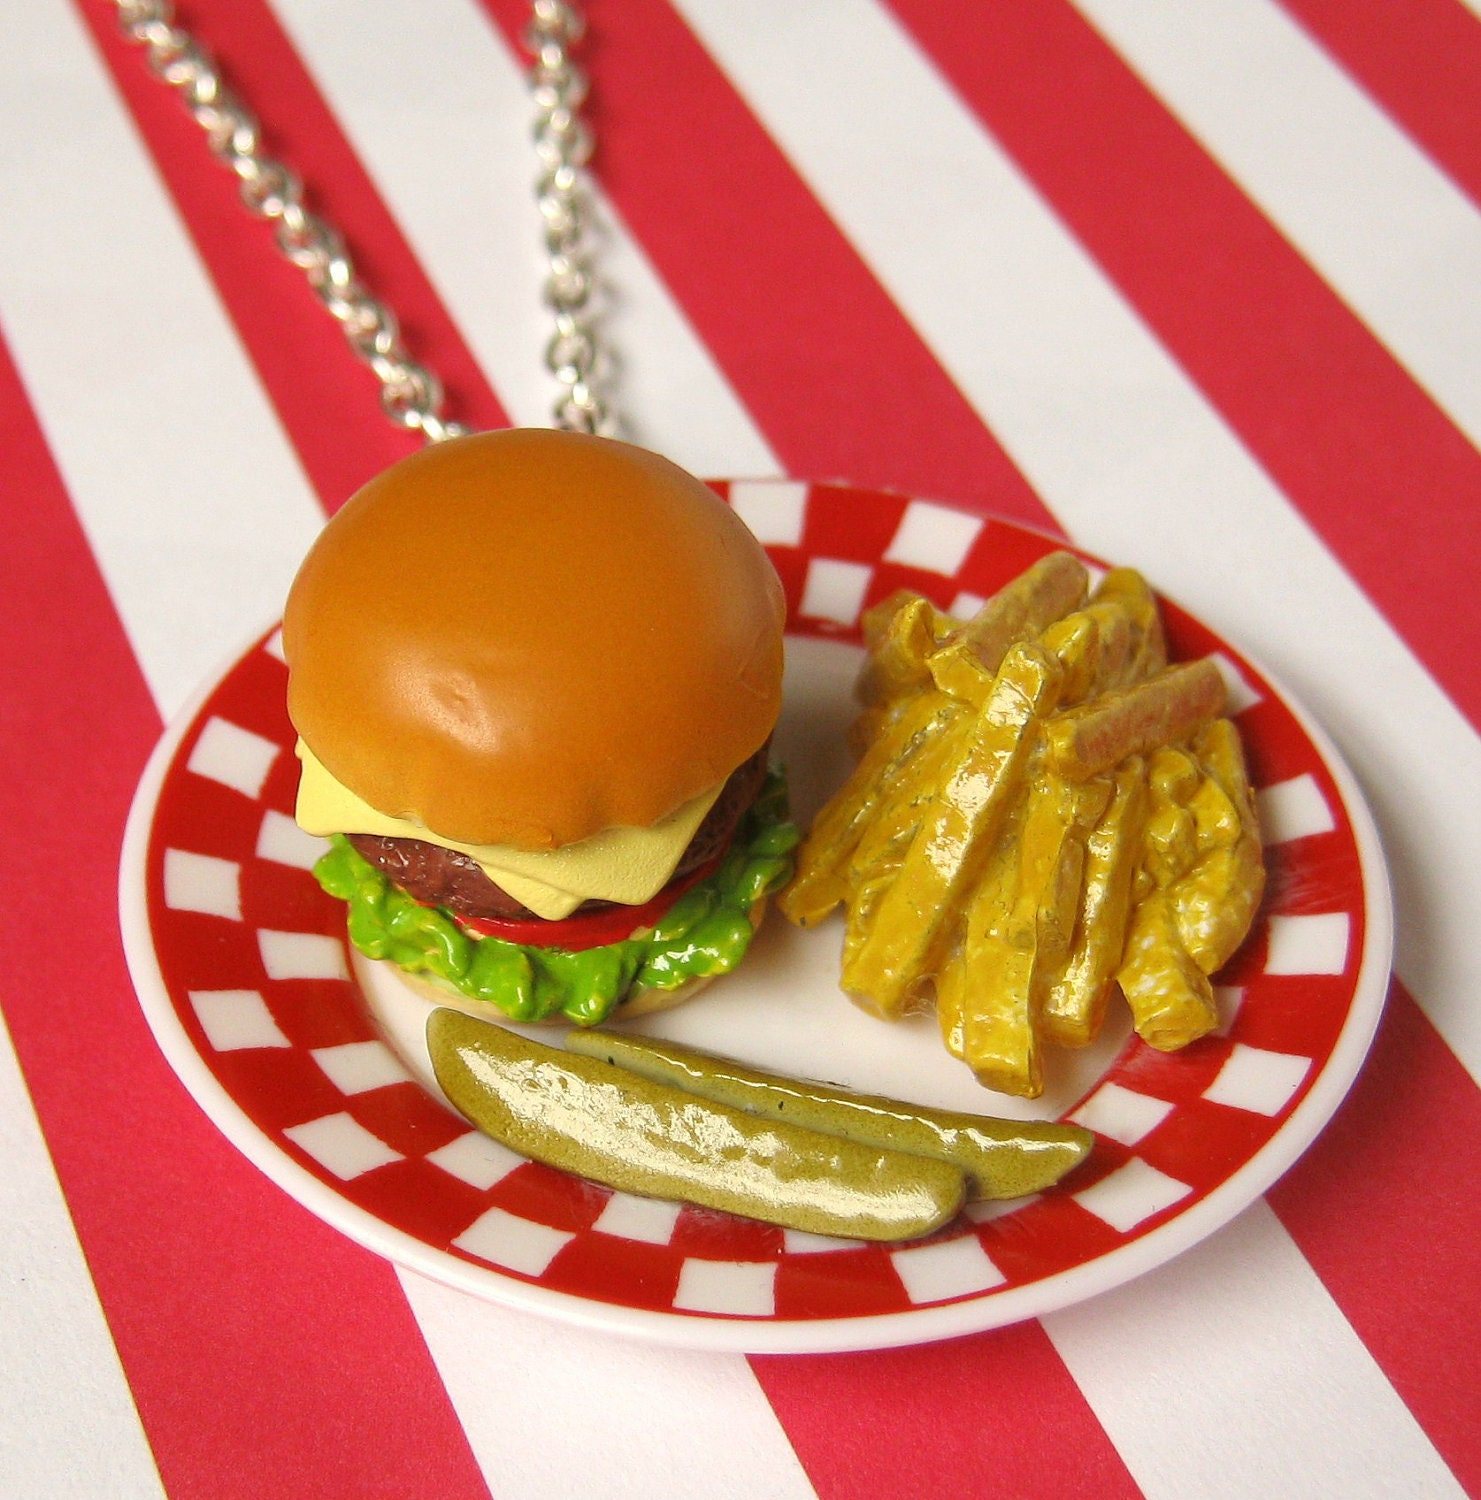 Diner Delicacy Necklace